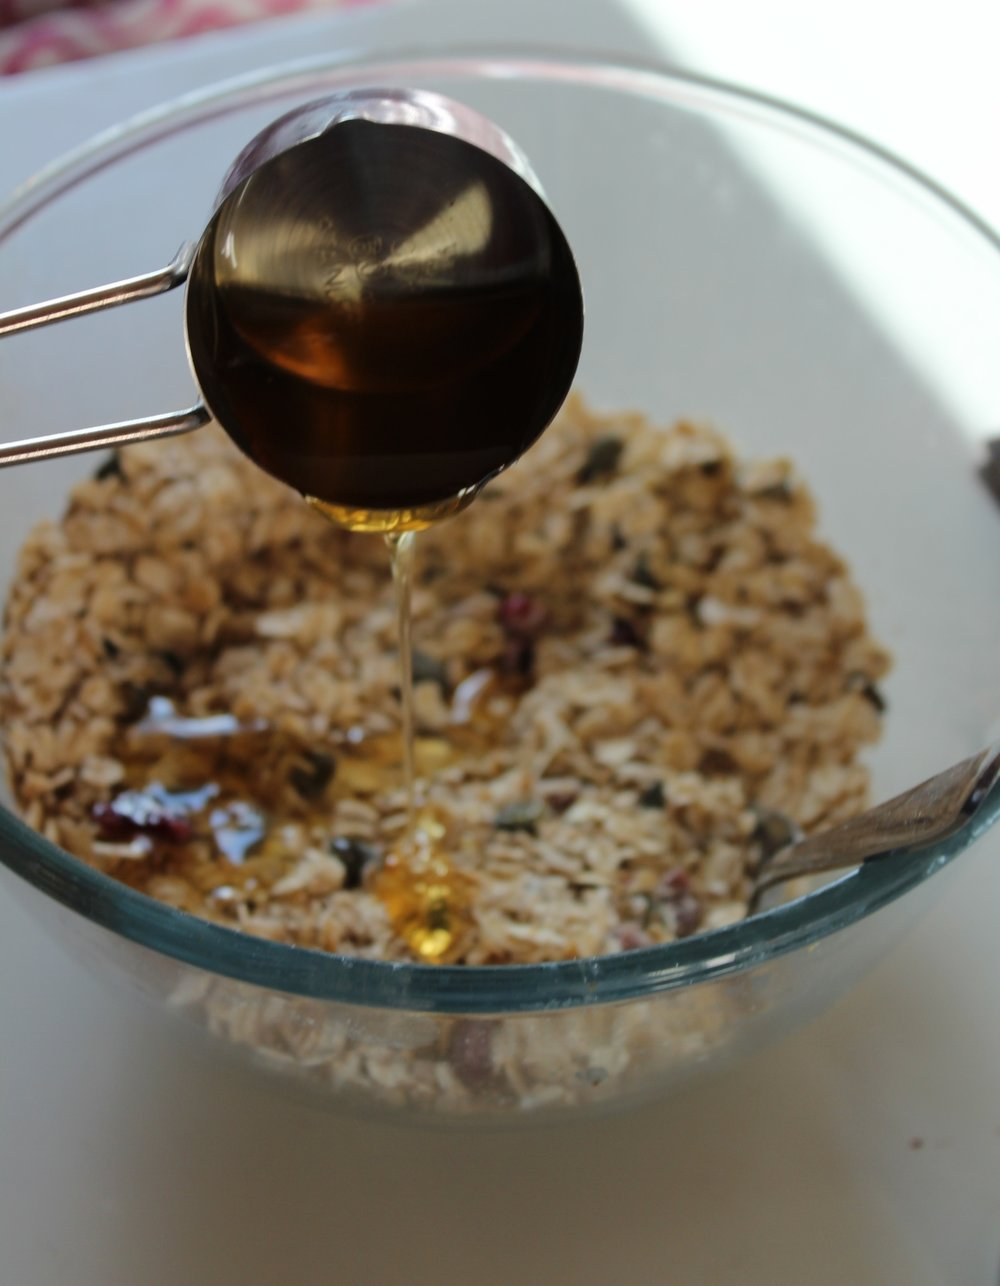 Granola-honey-dripping.JPG